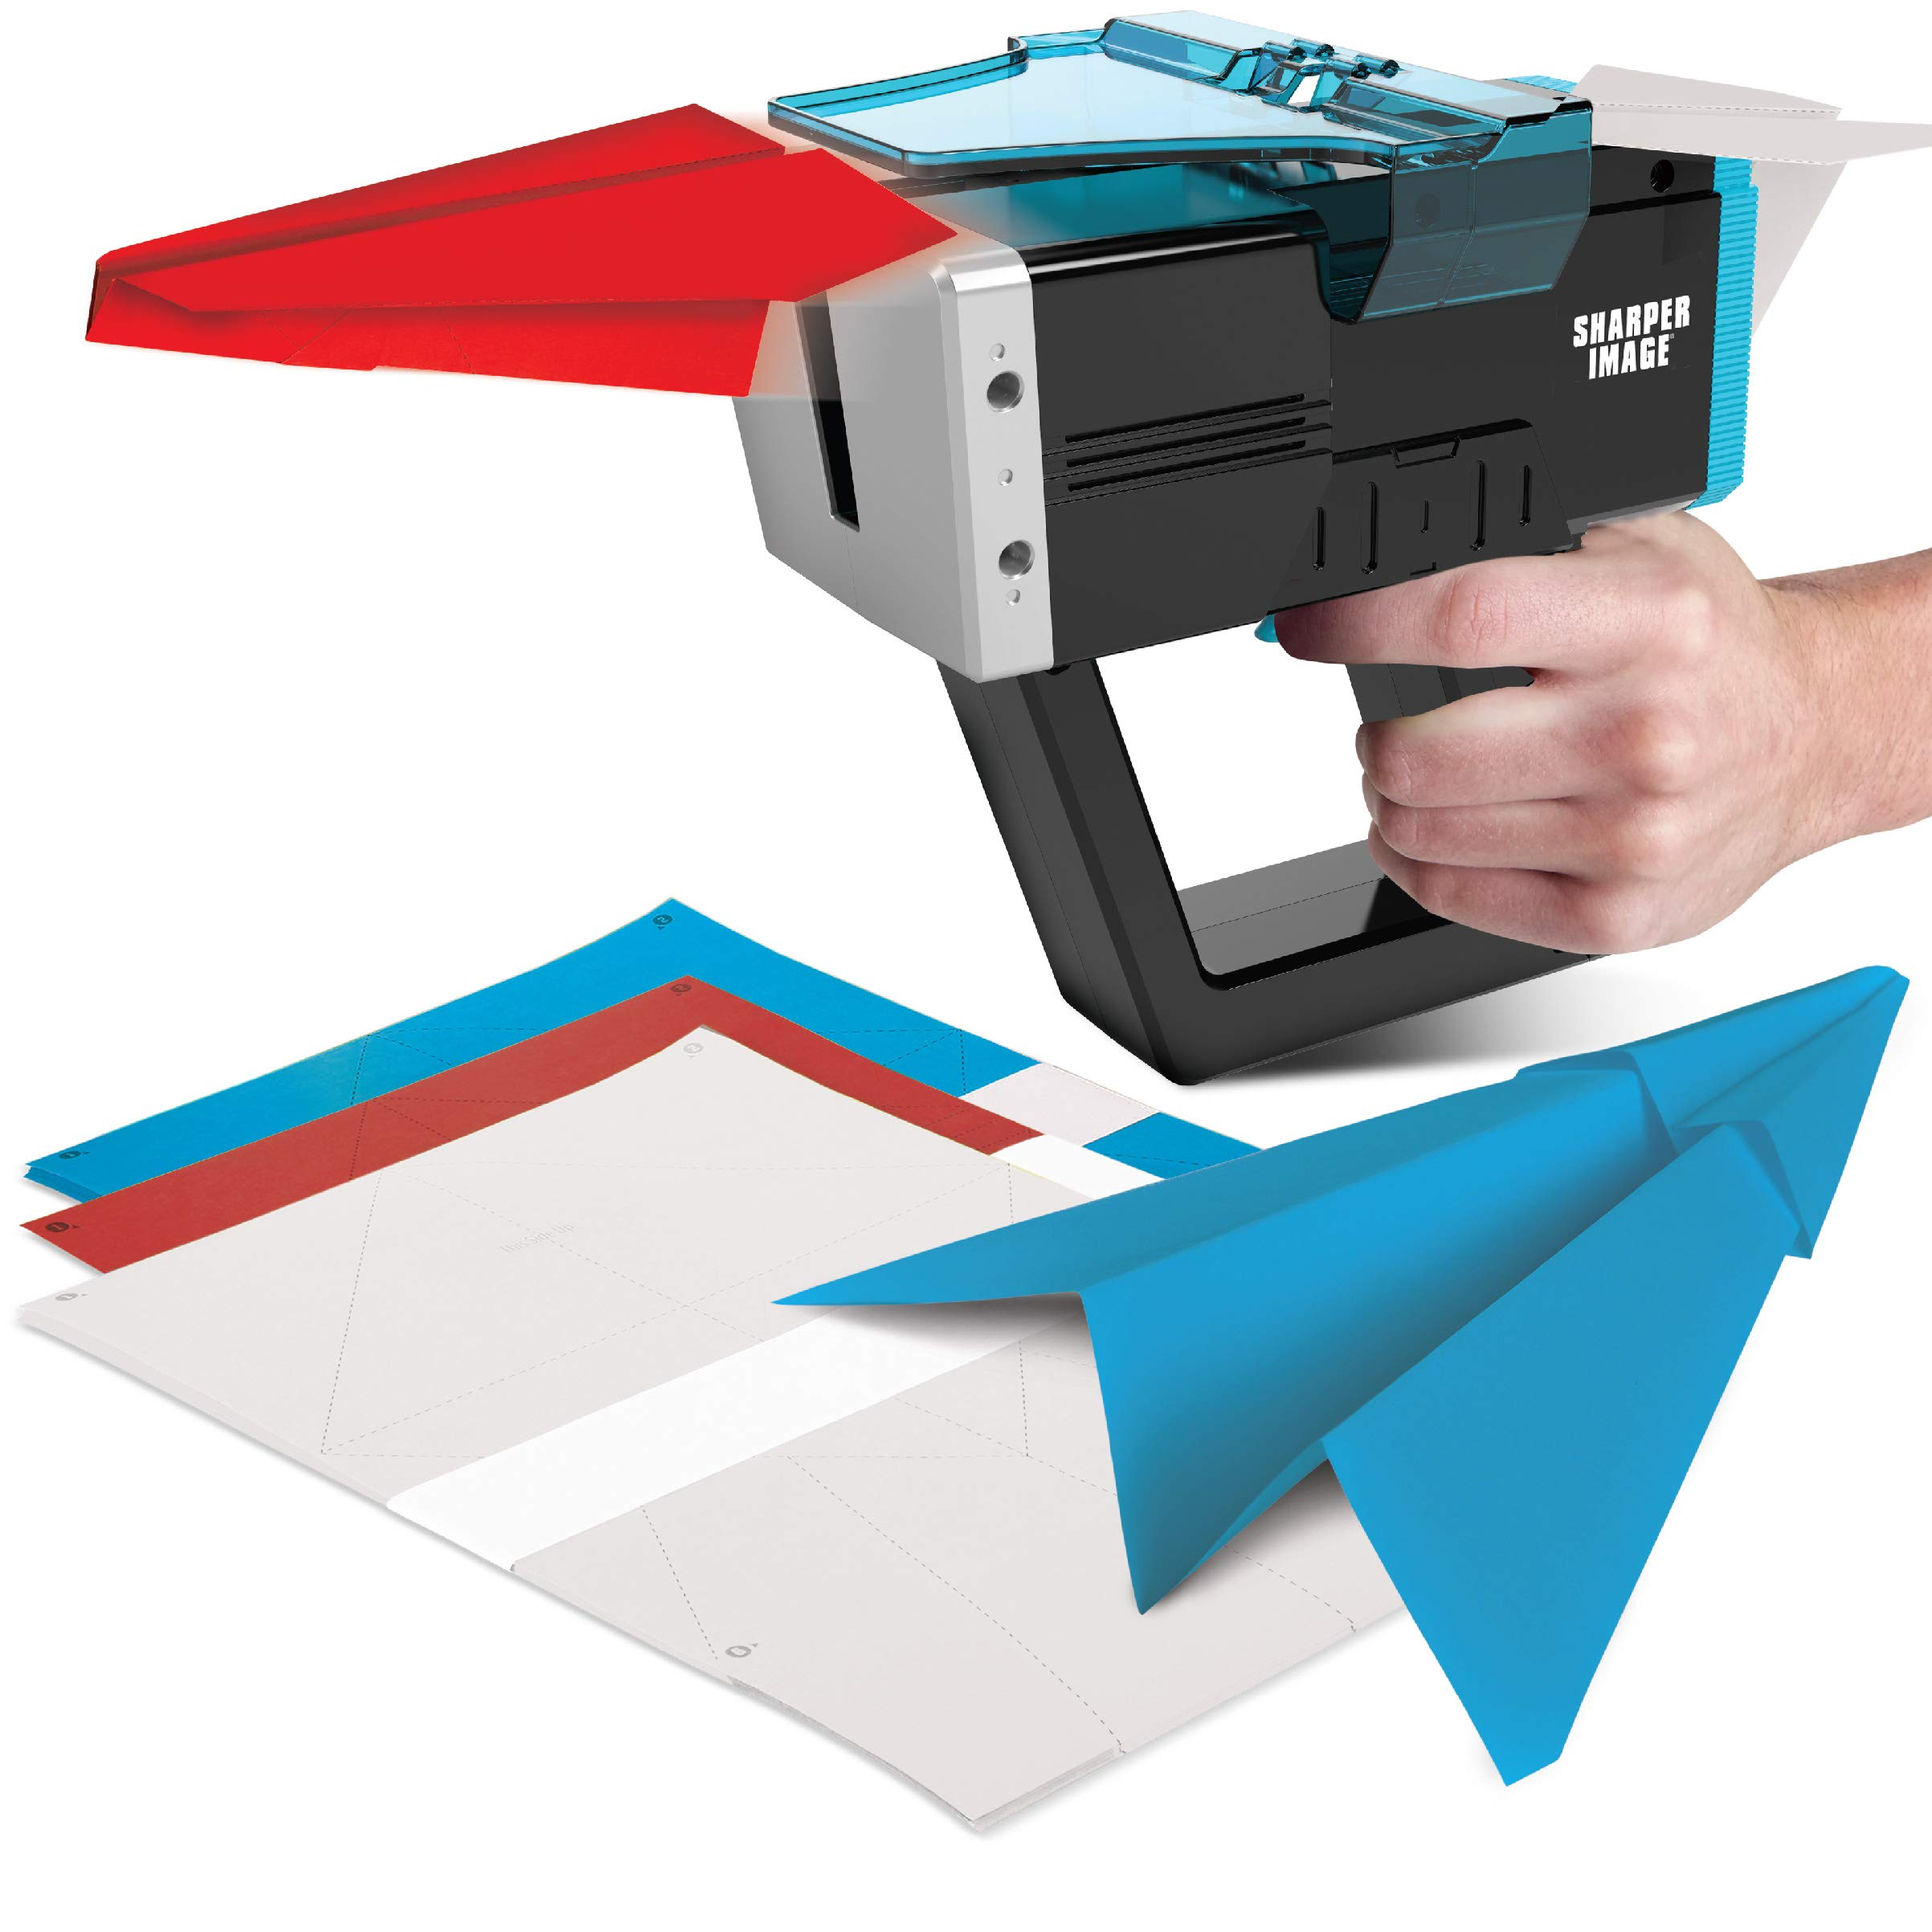 Sharper Image DIY Paper Airplane High Velocity Launcher, Battery-Power Motorized Plane Thrower, Fun Gadget, Adults and Teens, Indoor or Outdoor, Included Sheets, Arts and Crafts, Launch Your Gliders by Sharper Image